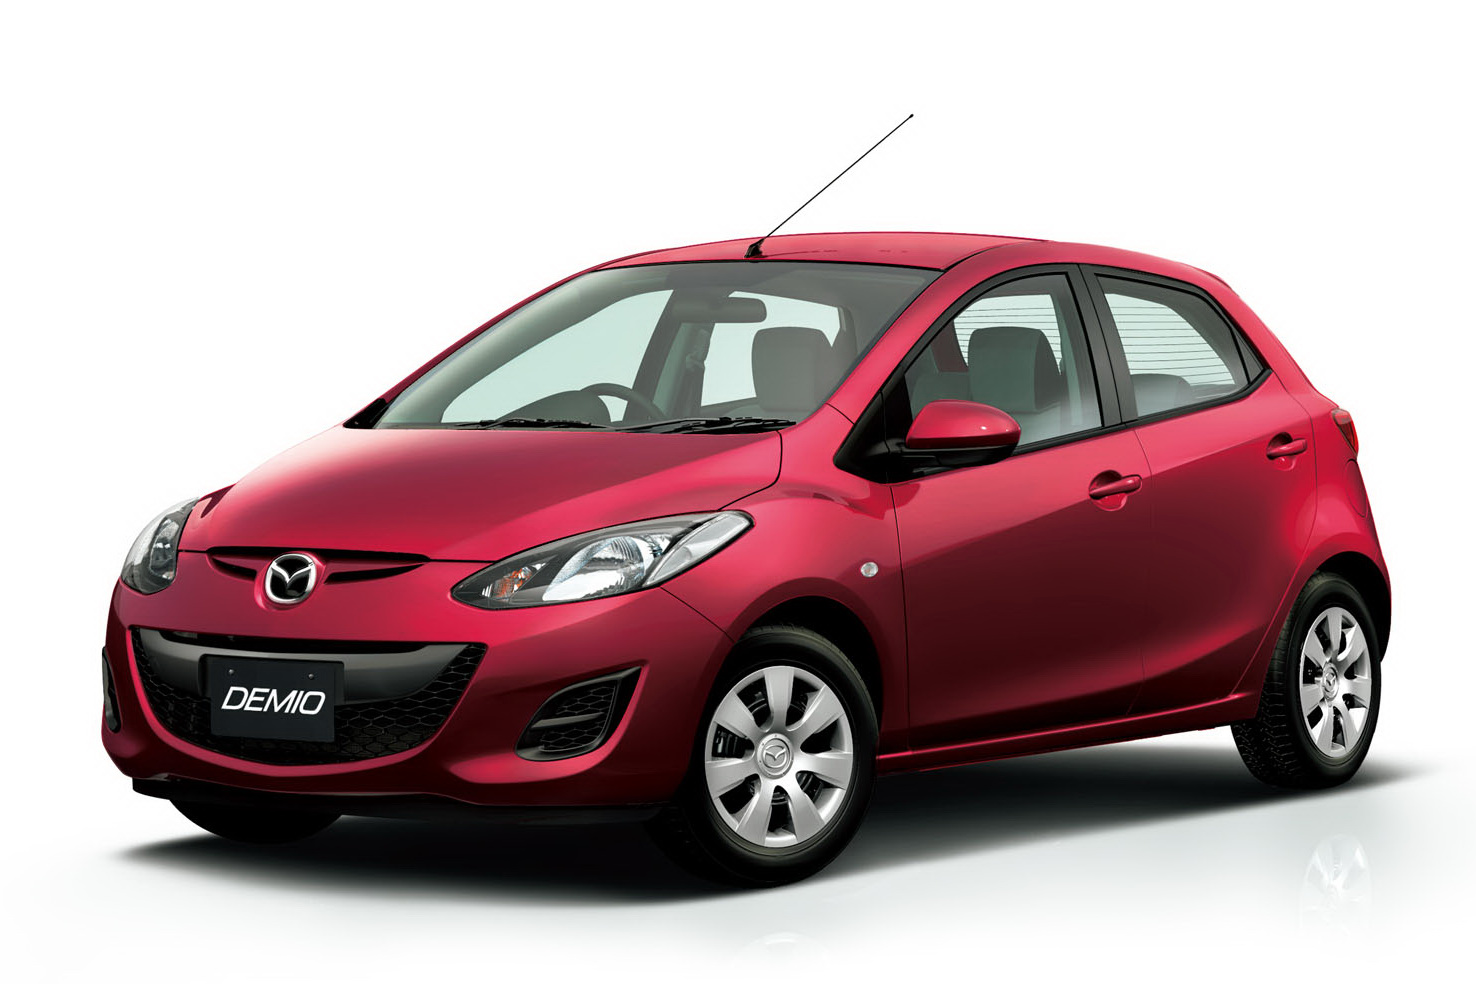 2012 Mazda Demio 13-SKYACTIV Arrives in Japan [Image ...